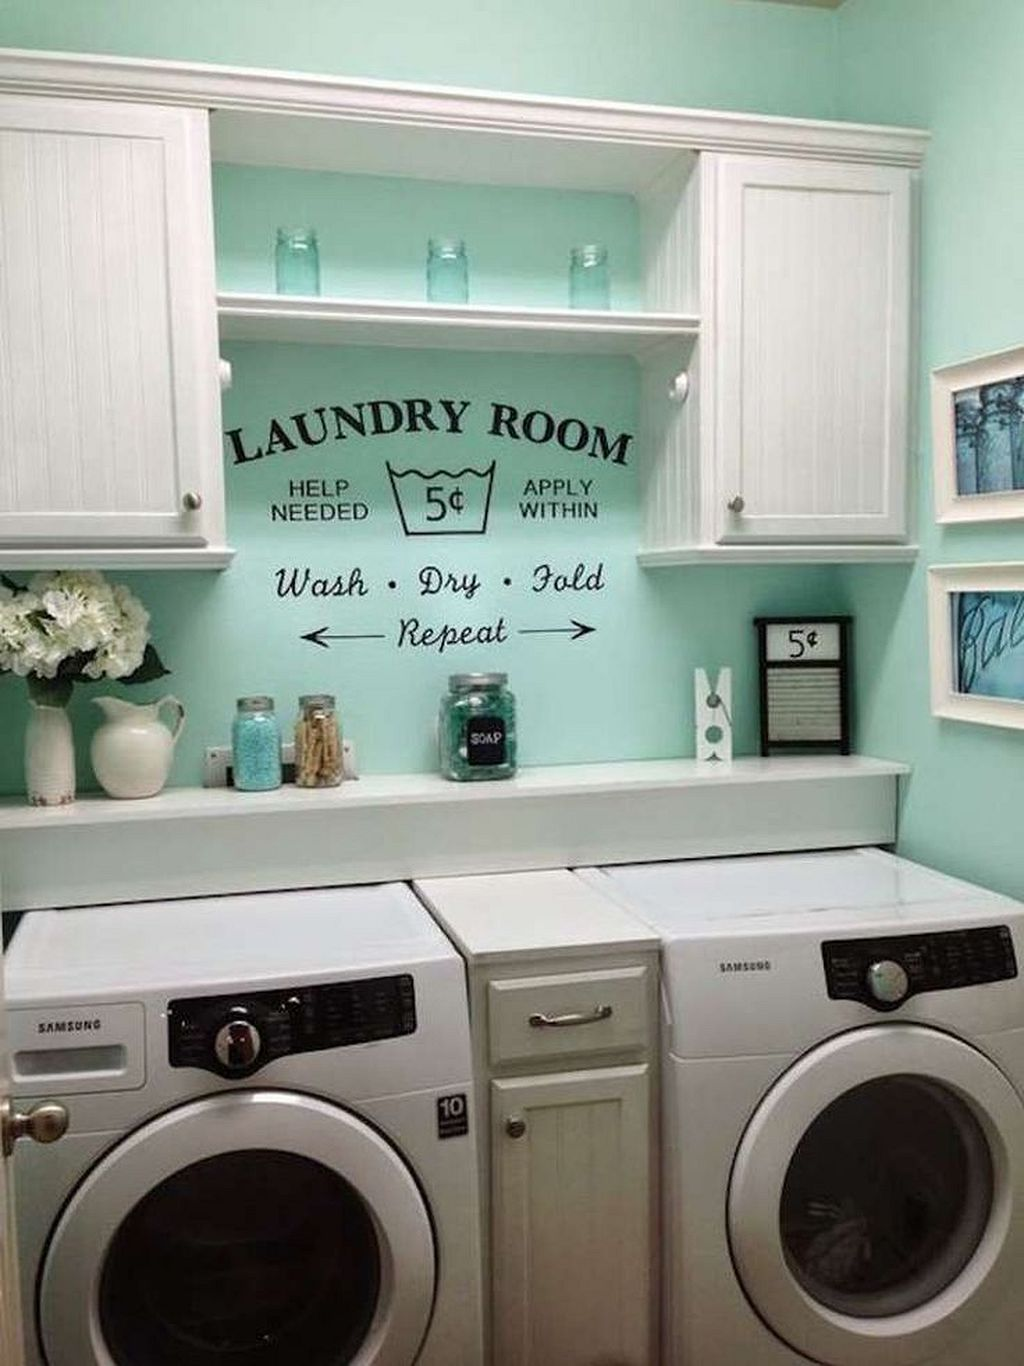 organization genius life diy organizer room ideas for collage laundry